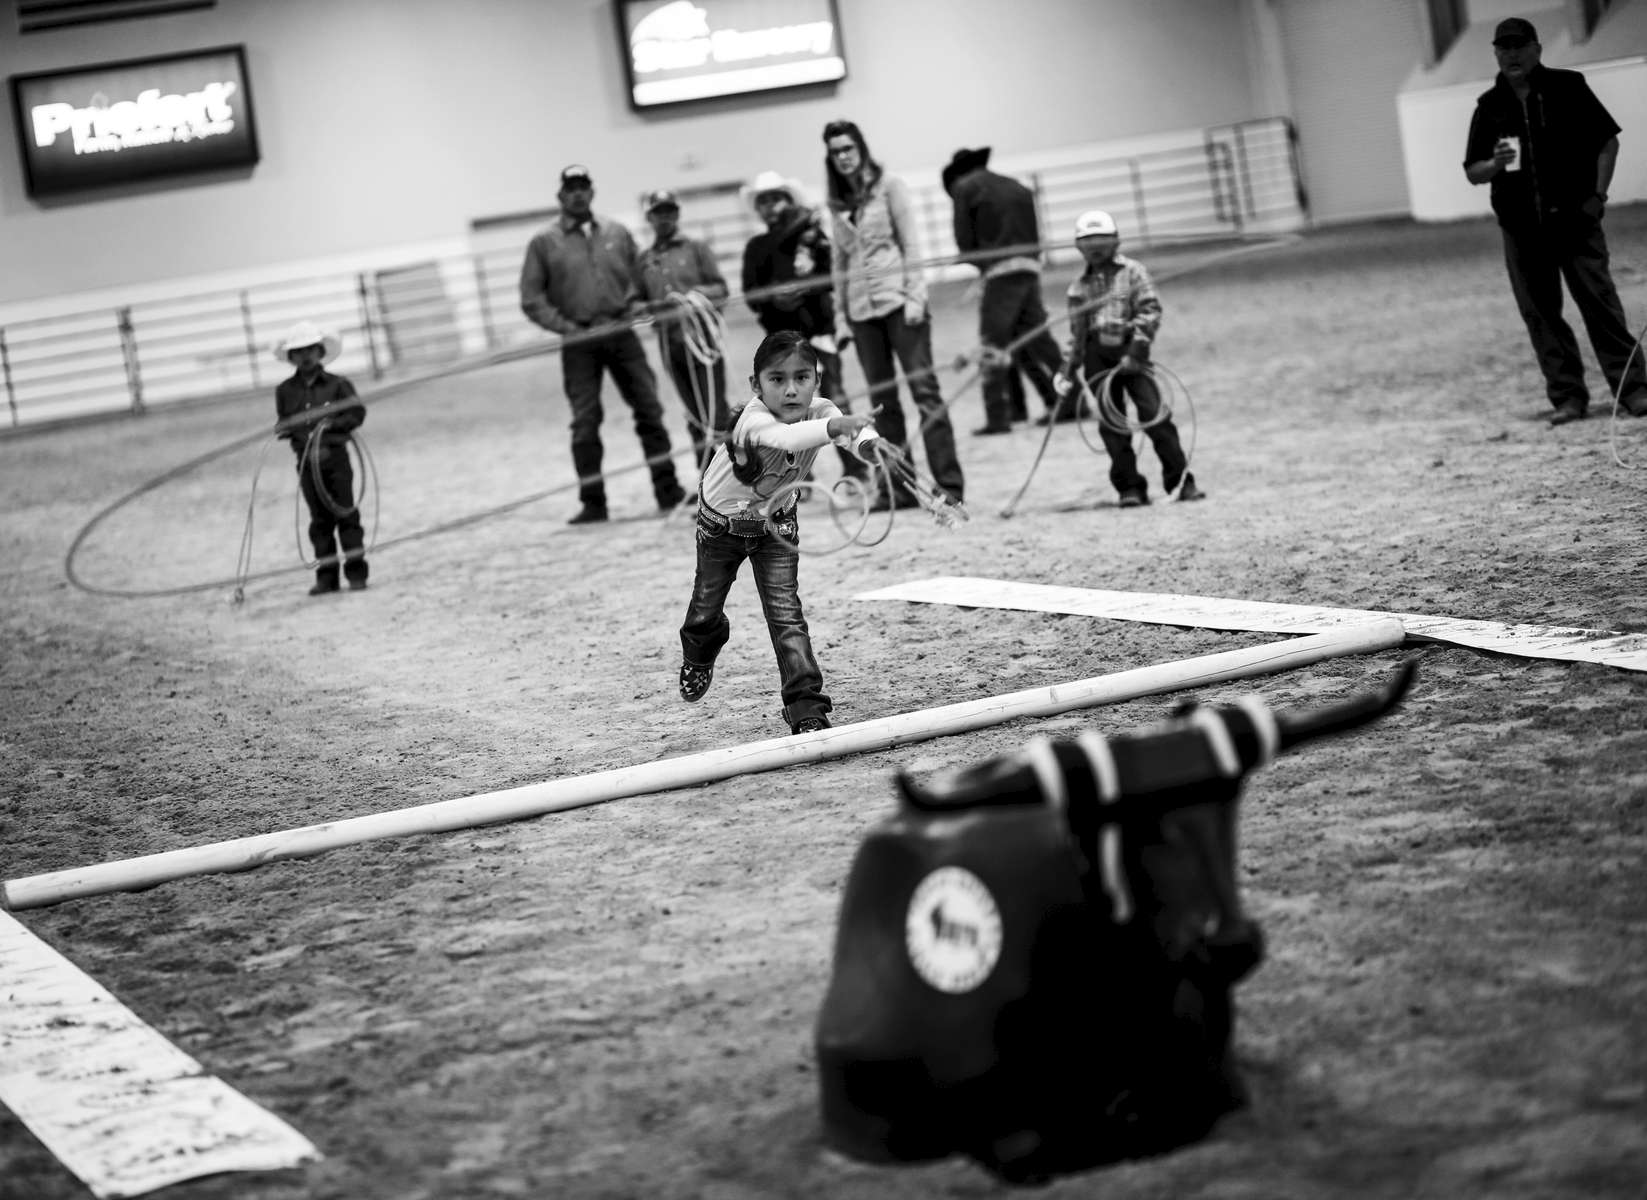 On the morning of the last day of the 2019 Indian National Finals Rodeo, children as young as two can participate in the Dummy Roping competition,  in Las Vegas, Nevada on October 25, 2019.